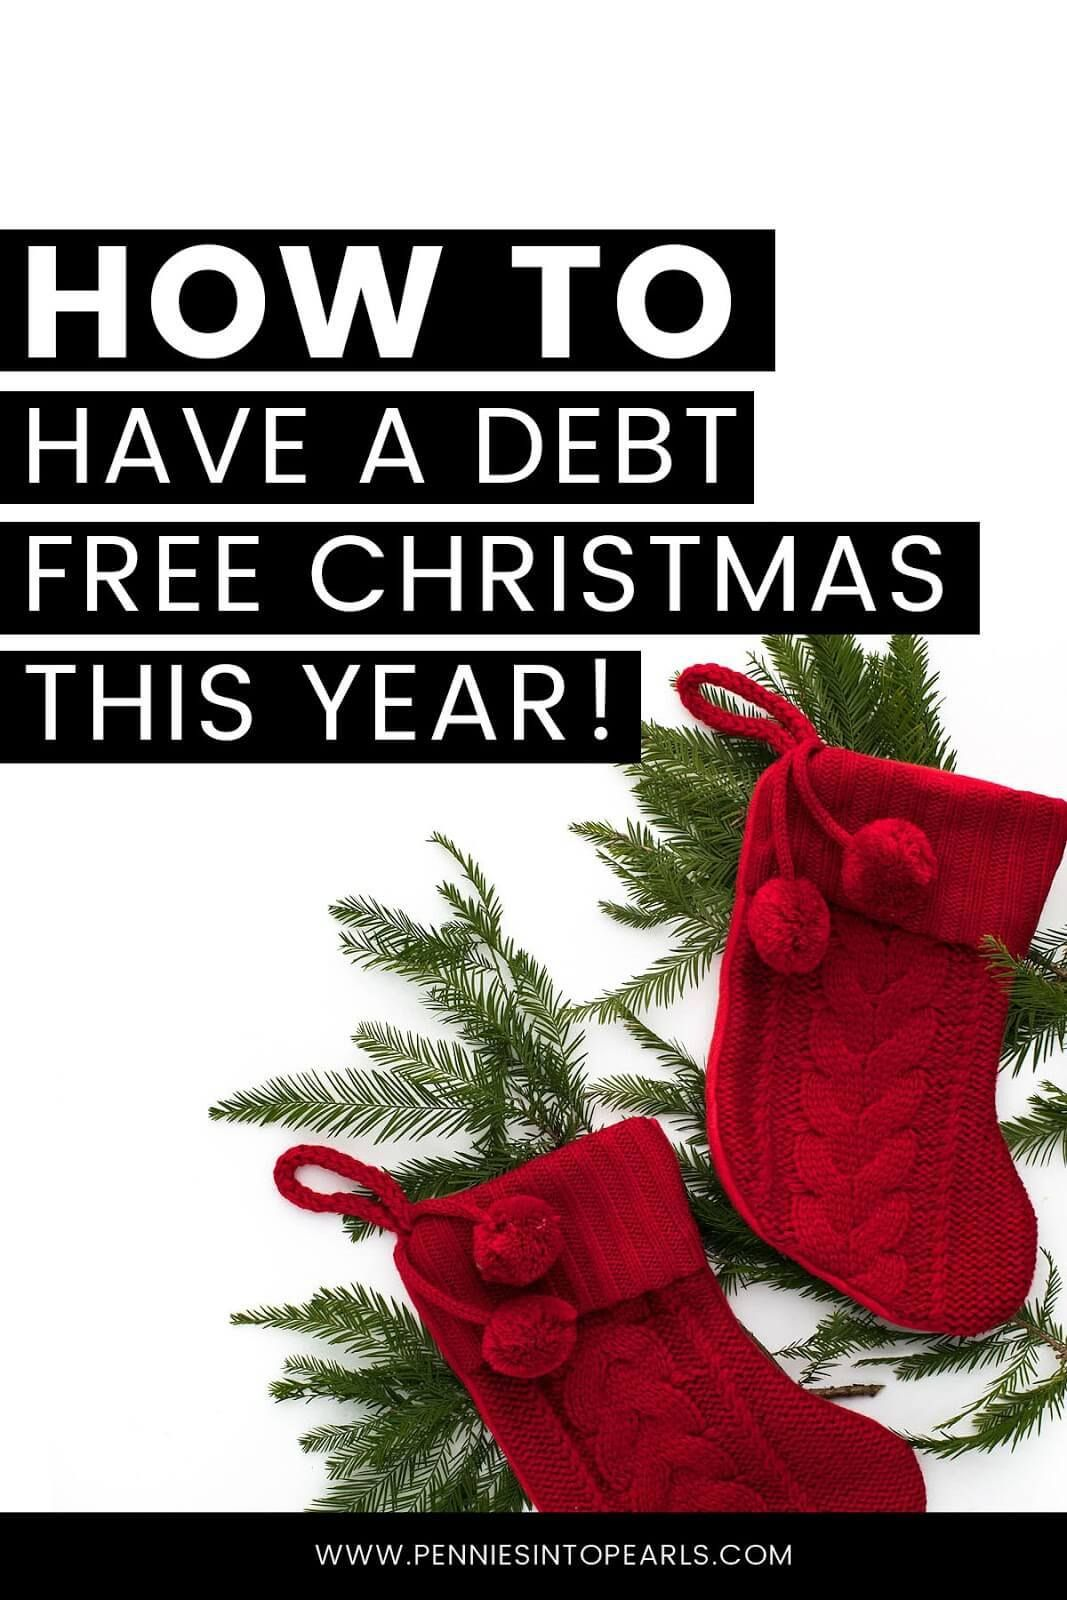 Christmas 2020 Debt Free How to Shop for a Debt Free Christmas   Pennies into Pearls in